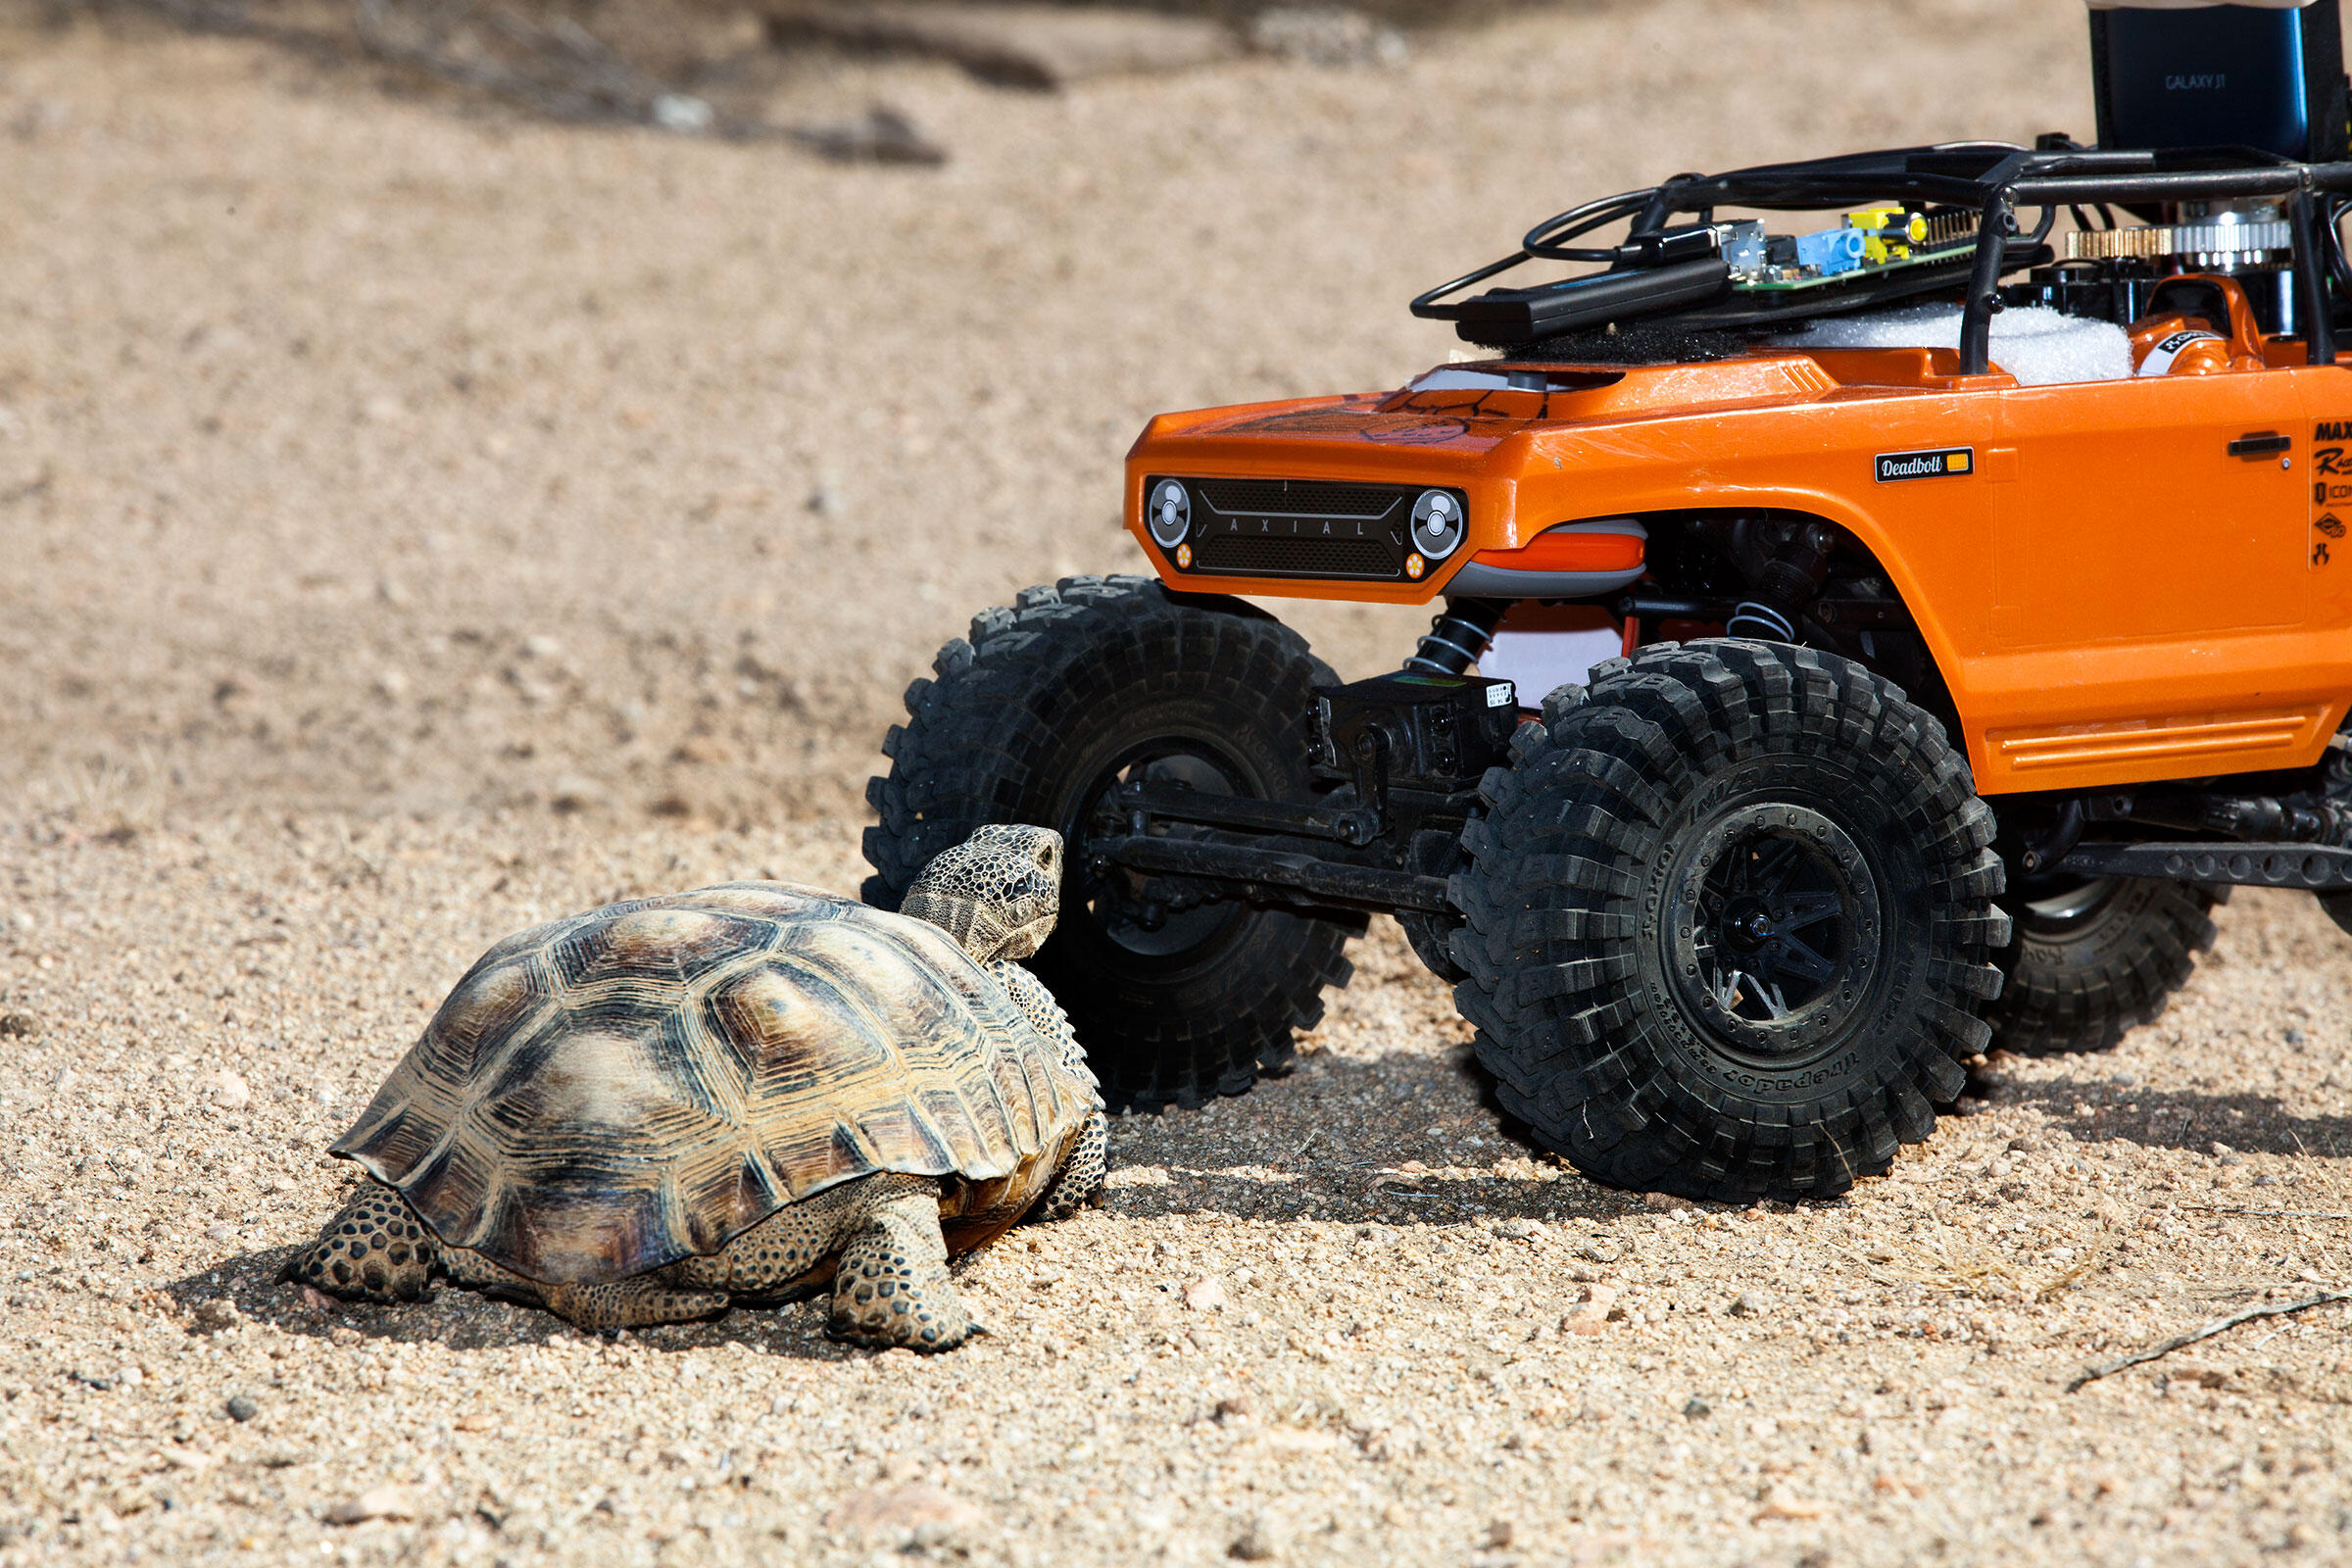 A California desert tortoise gets in close for a look at the Hardshell Labs rover. Tom Fowlks